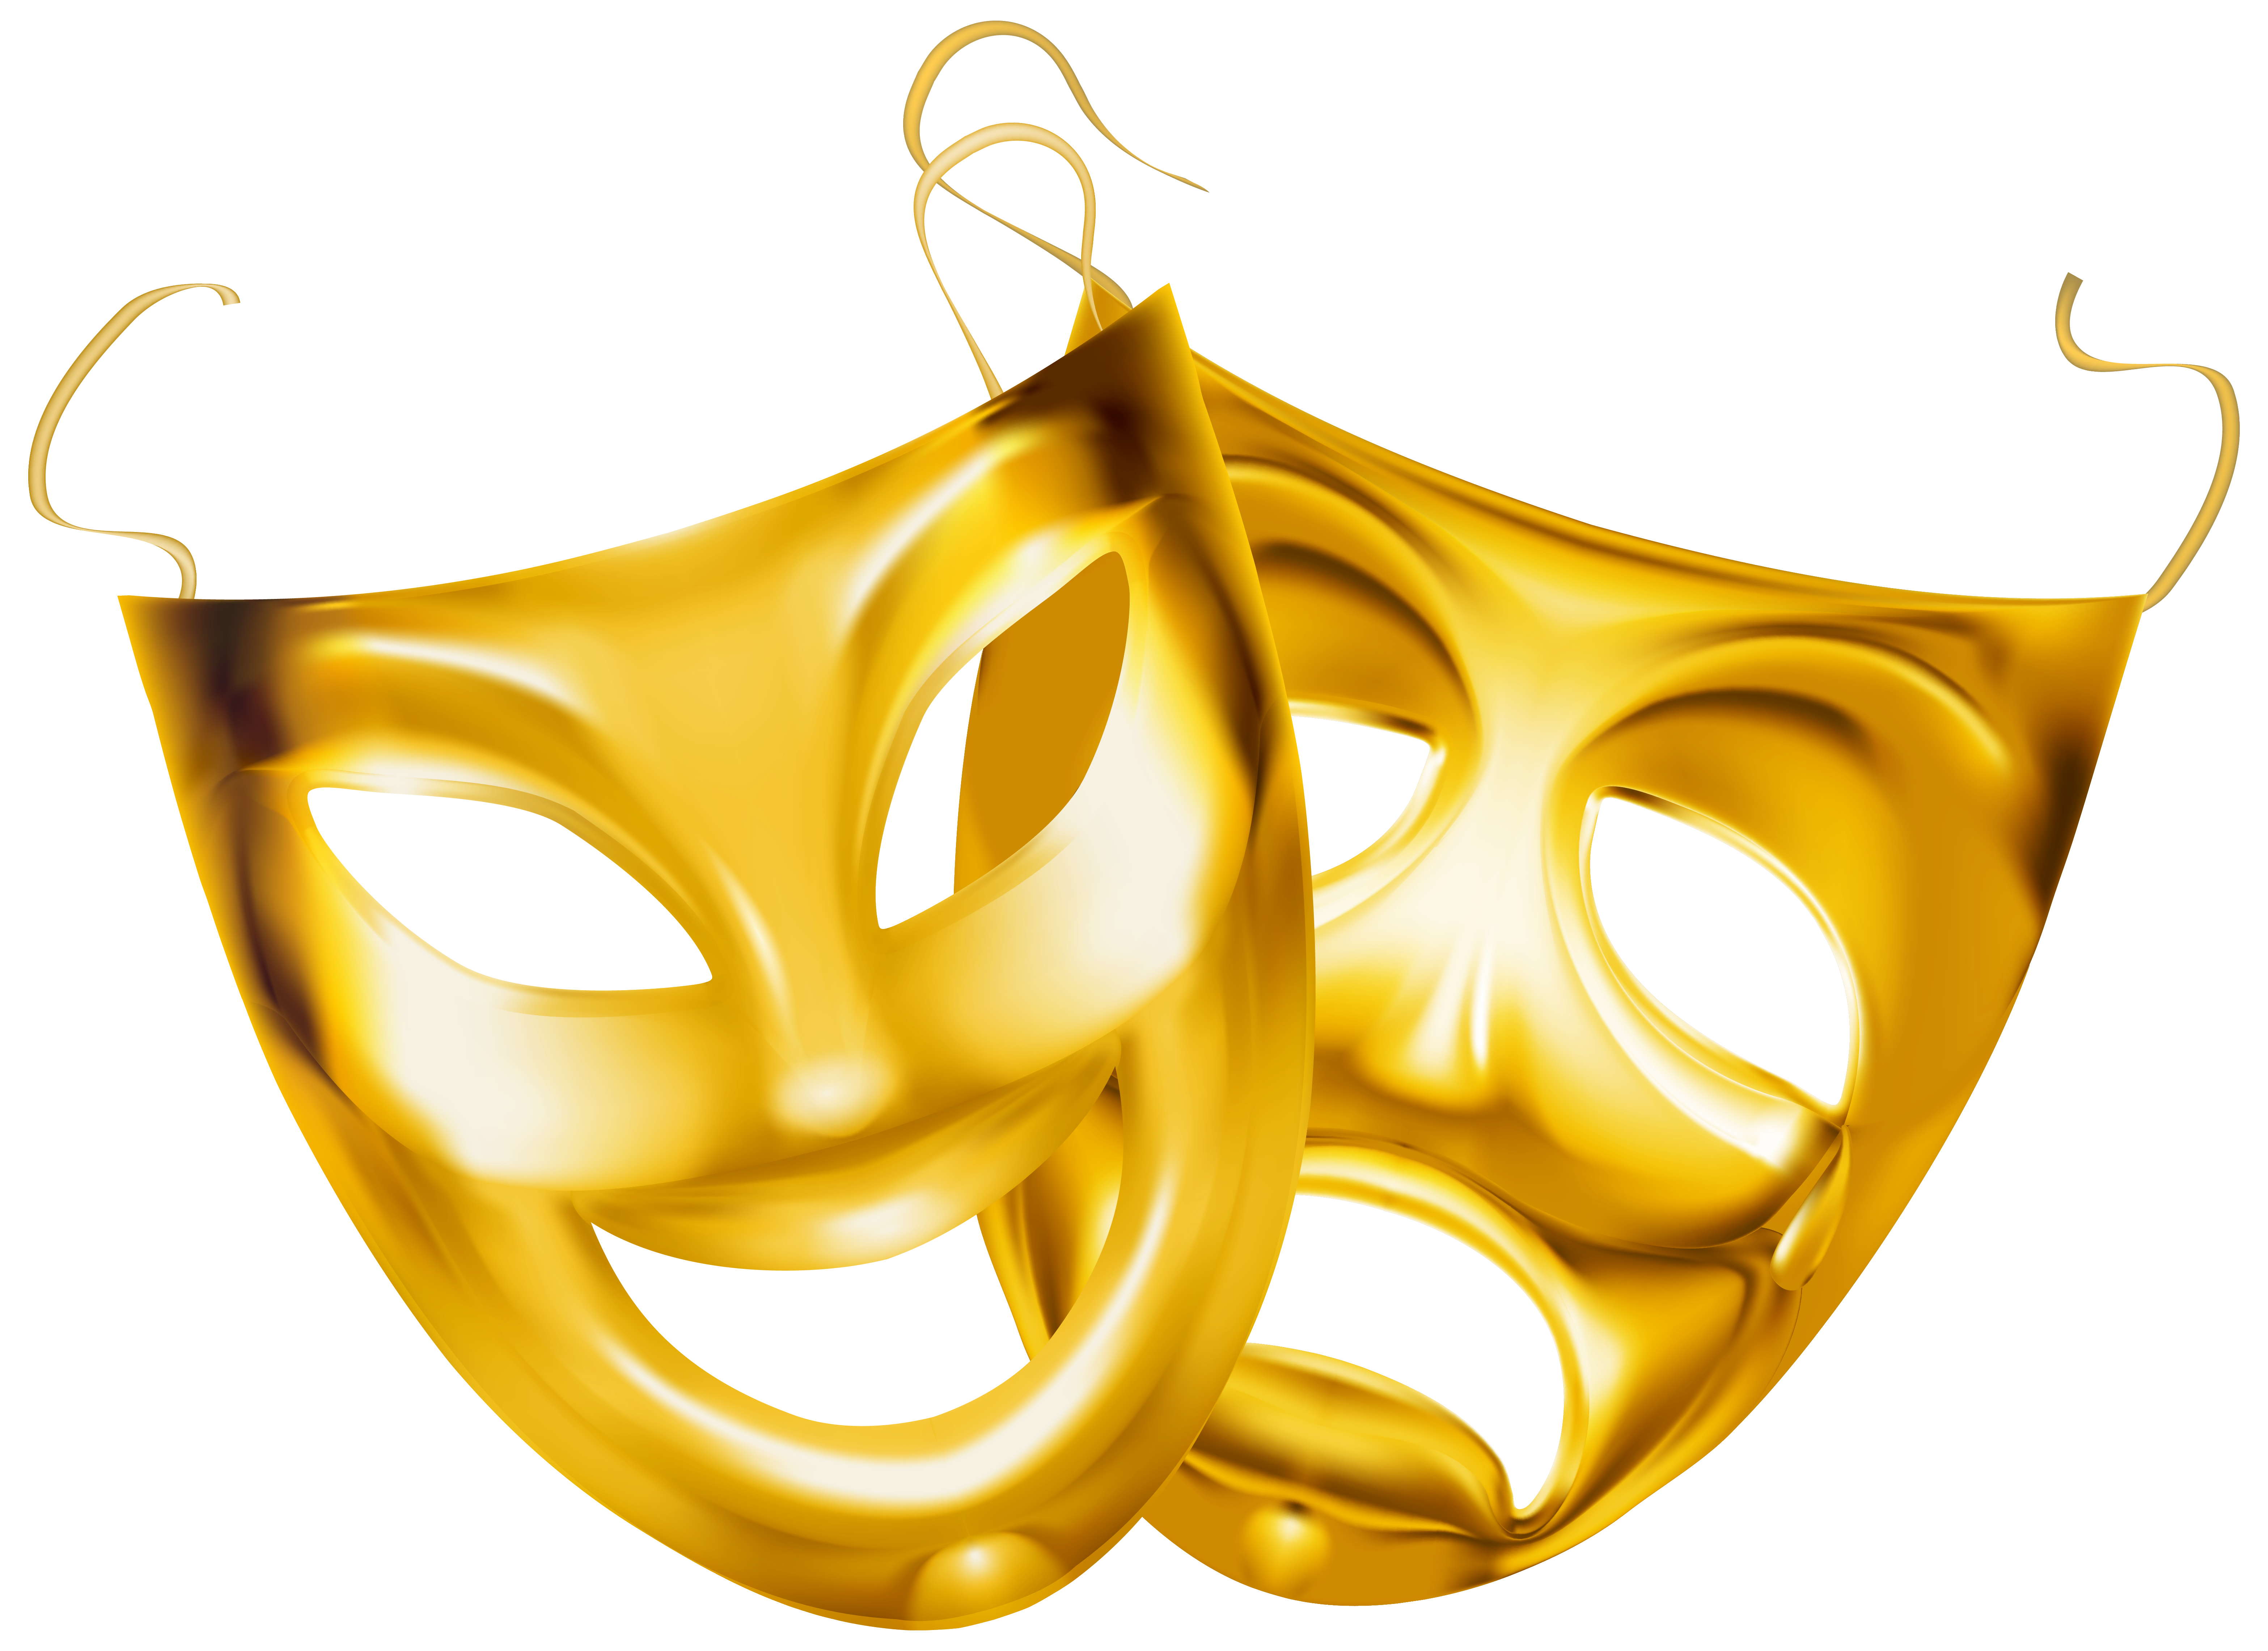 Theater mask png. Gold masks clipart image